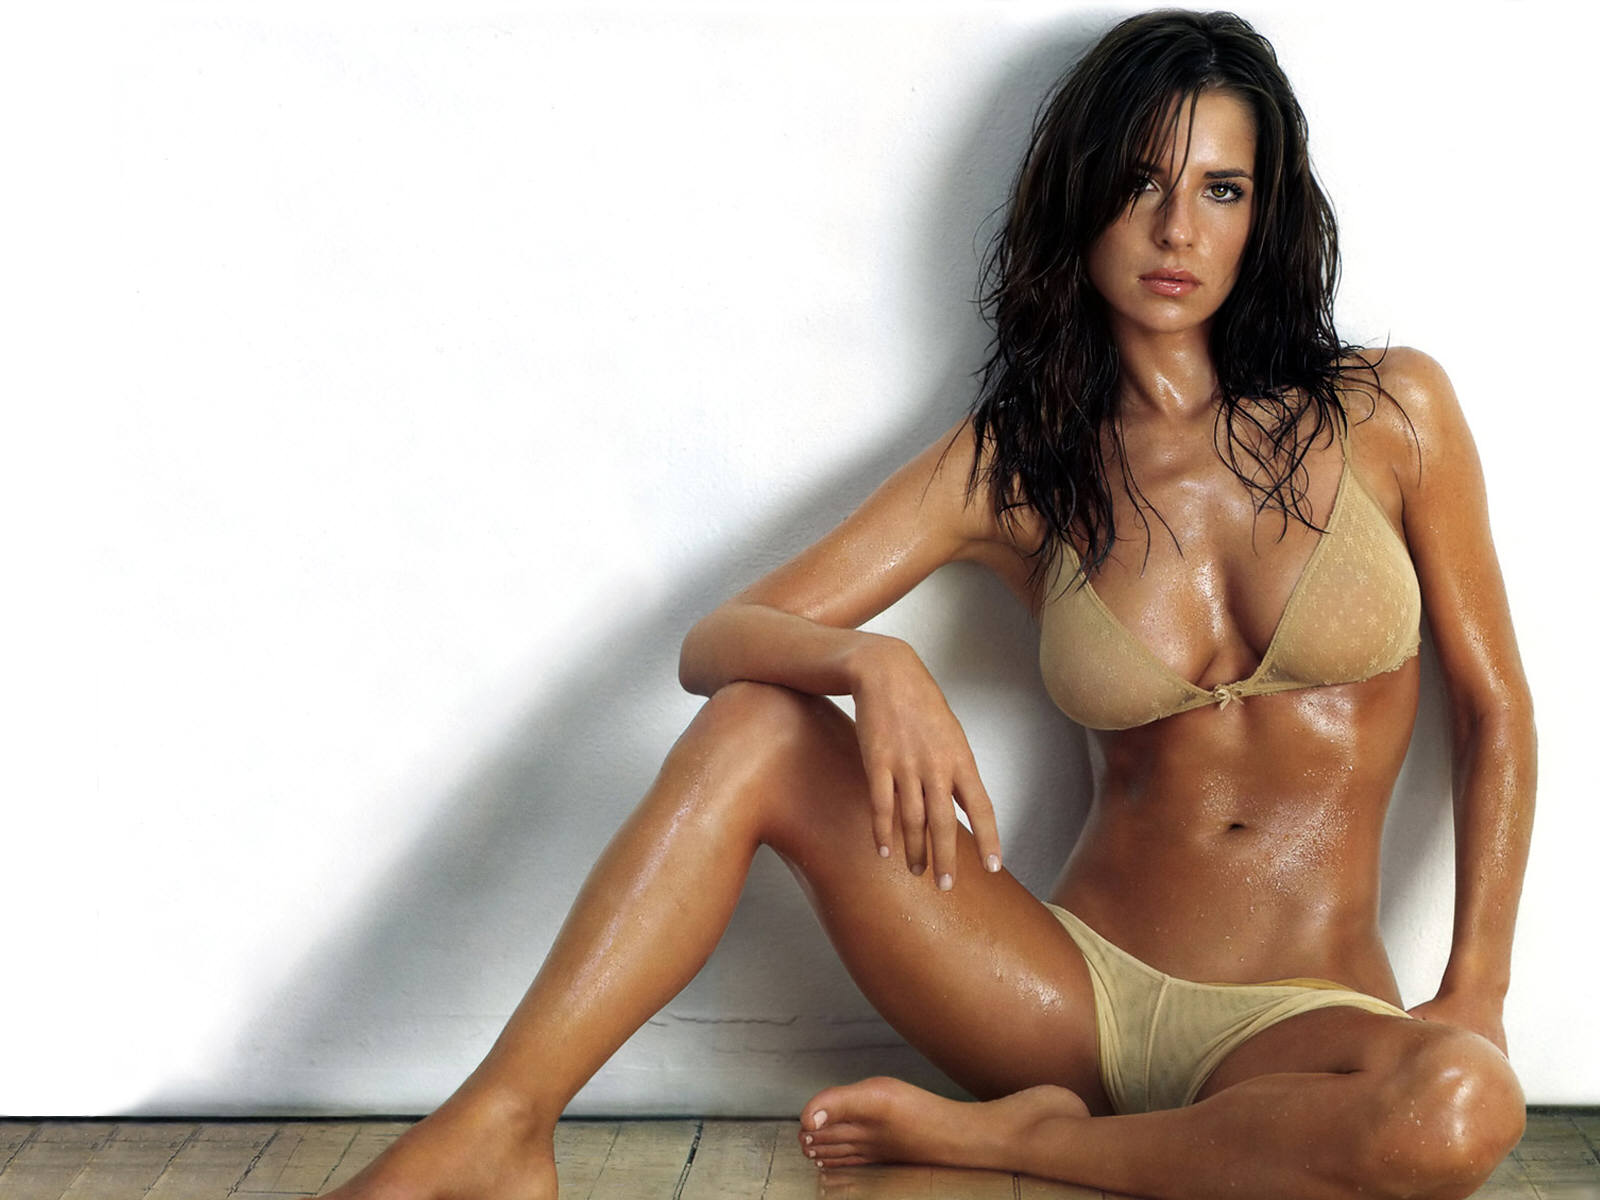 Babe Hd hot babe wallpapers - sf wallpaper